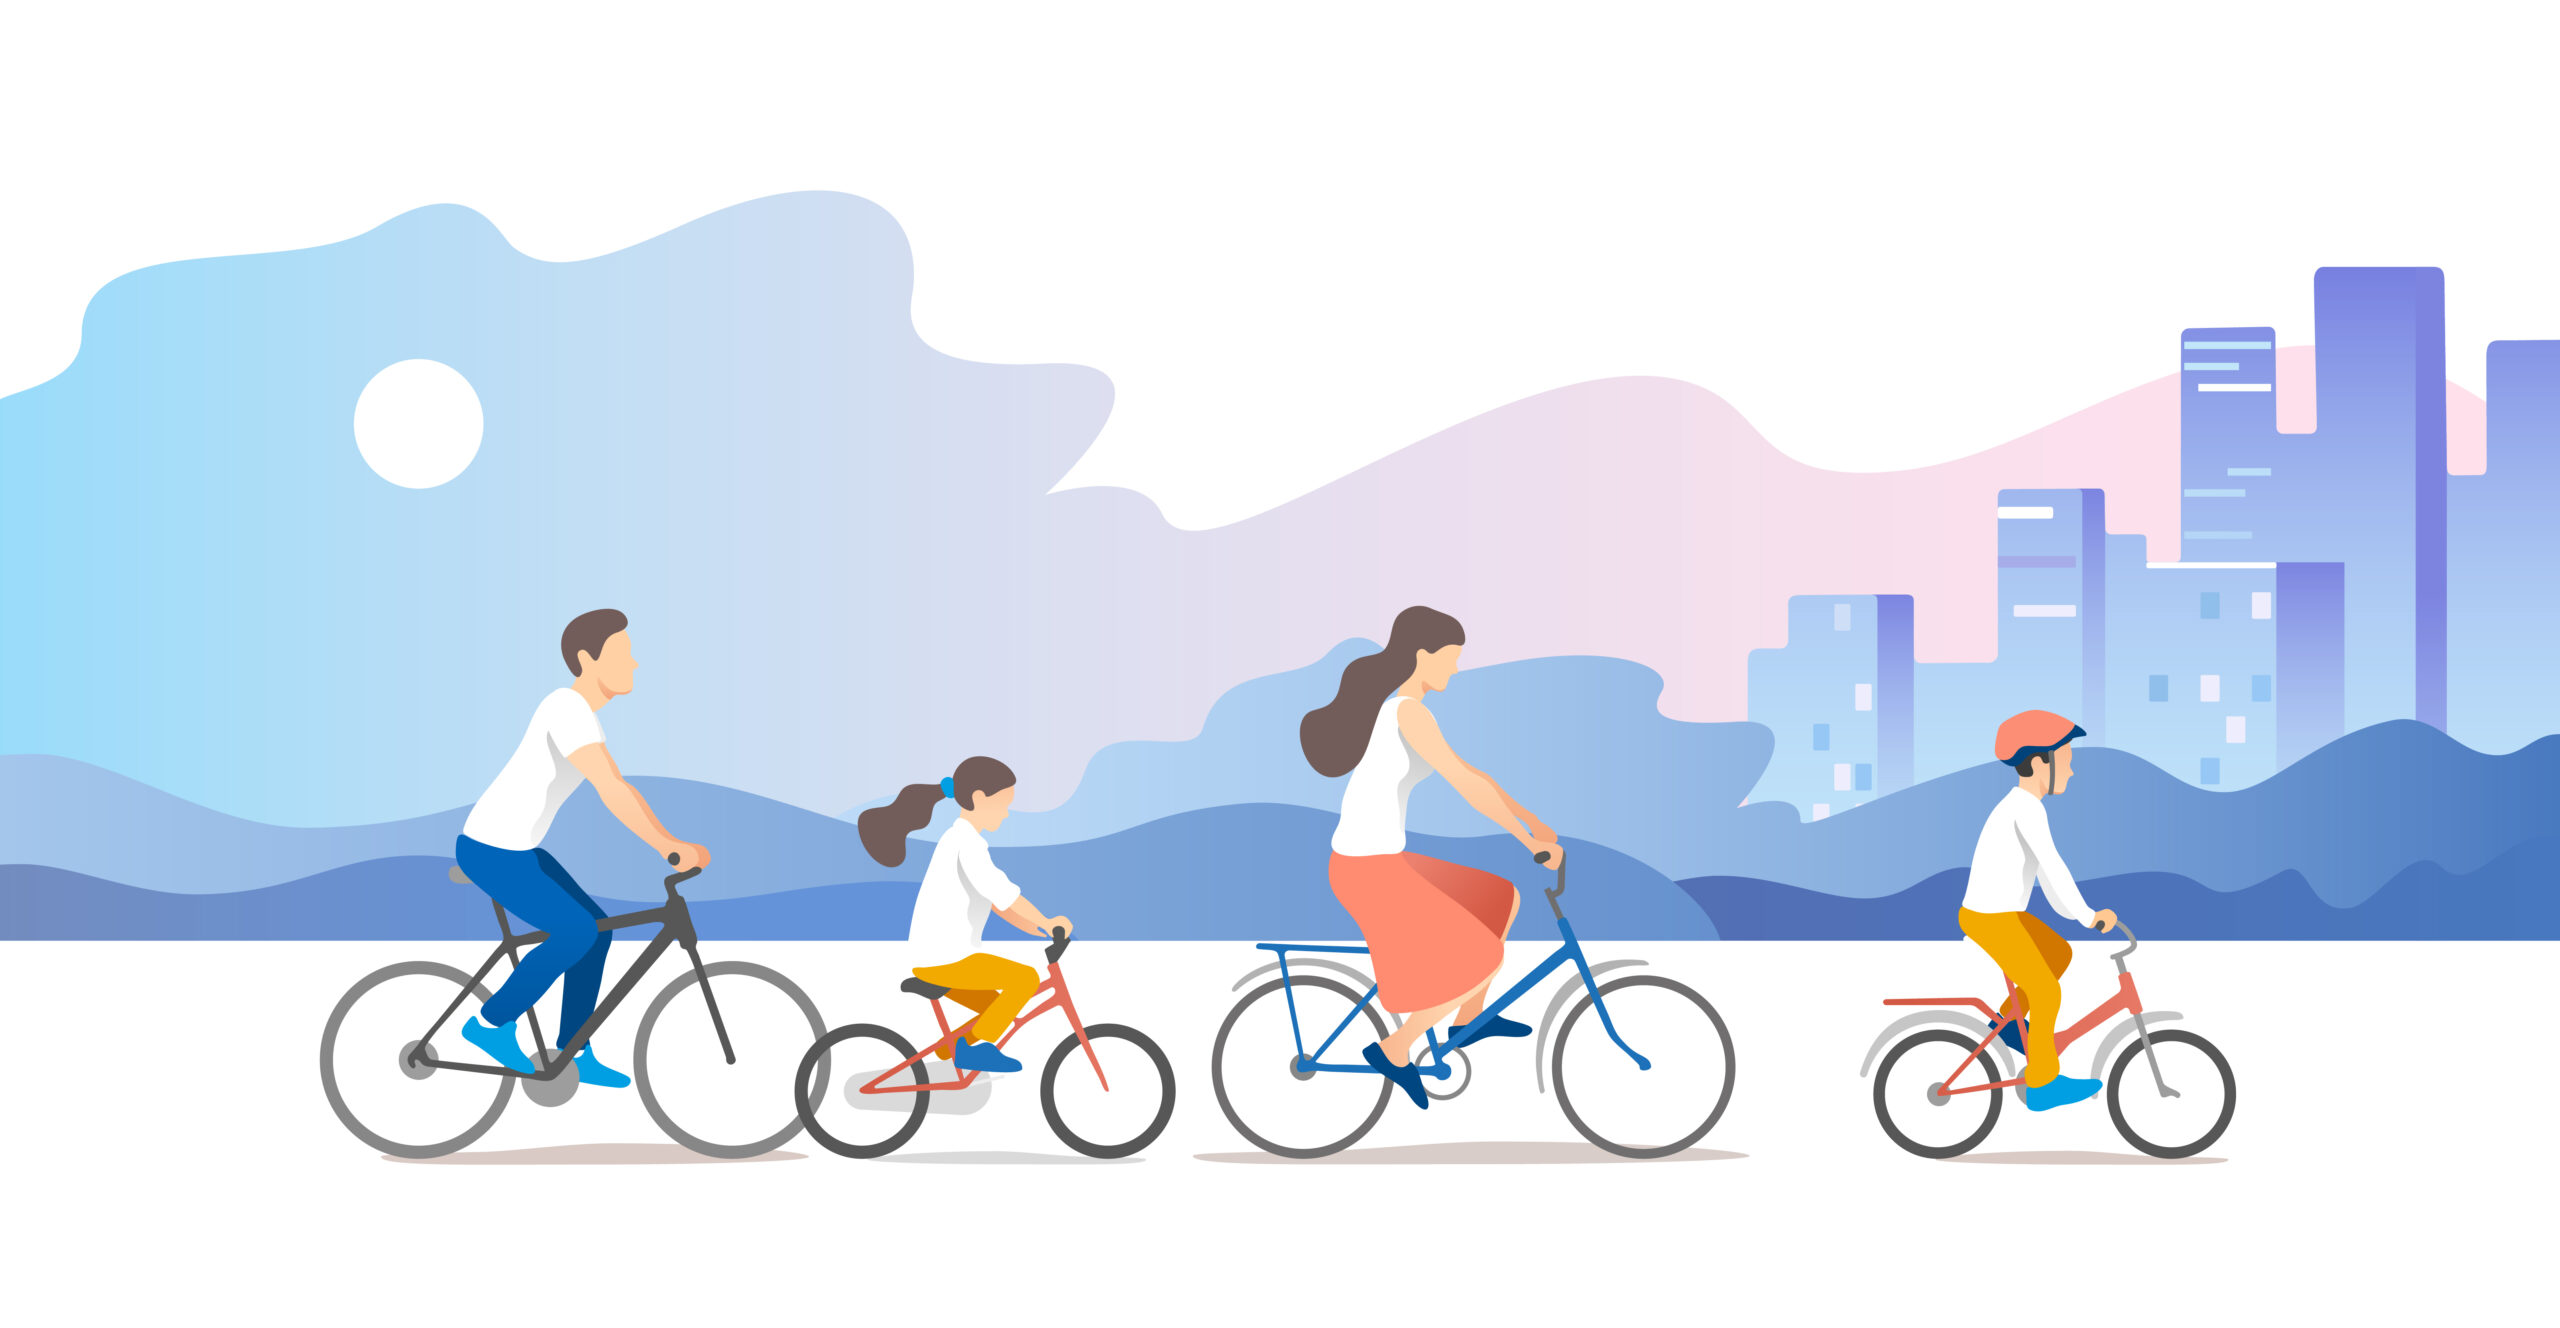 5 Health Benefits of Cycling Worth Talking About